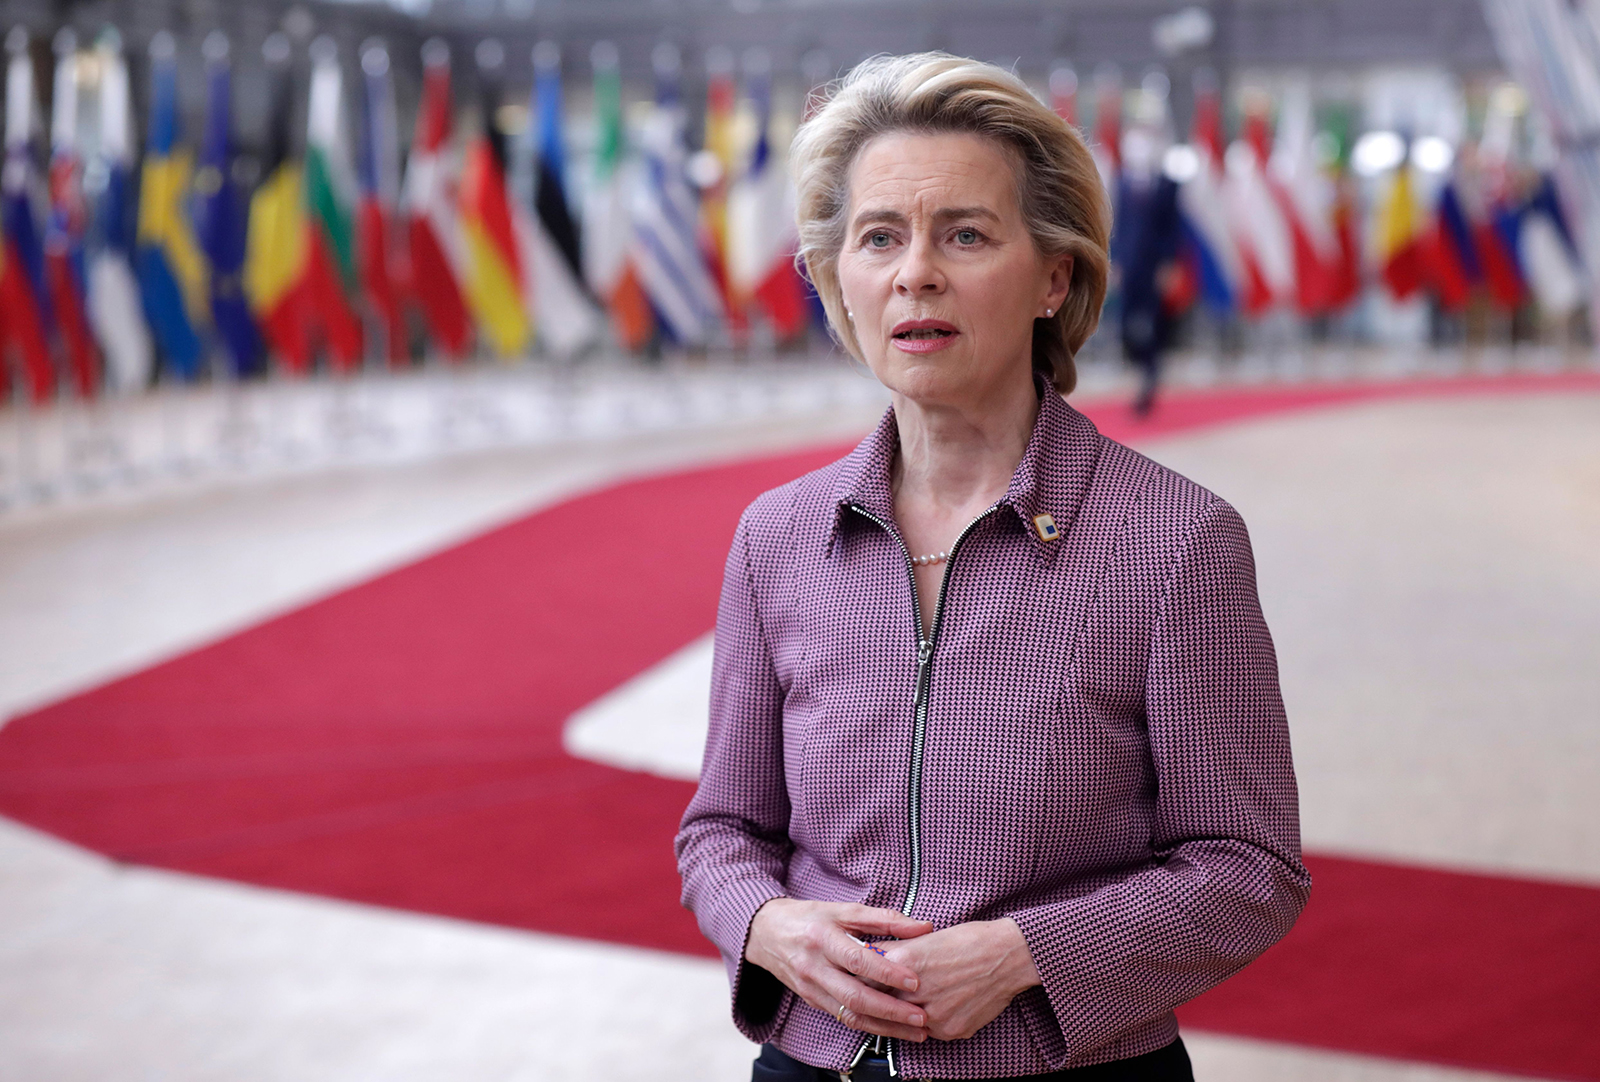 President of the European Commission Ursula von der Leyen speaks to the press as she arrives prior to an EU summit in Brussels, on October 15.